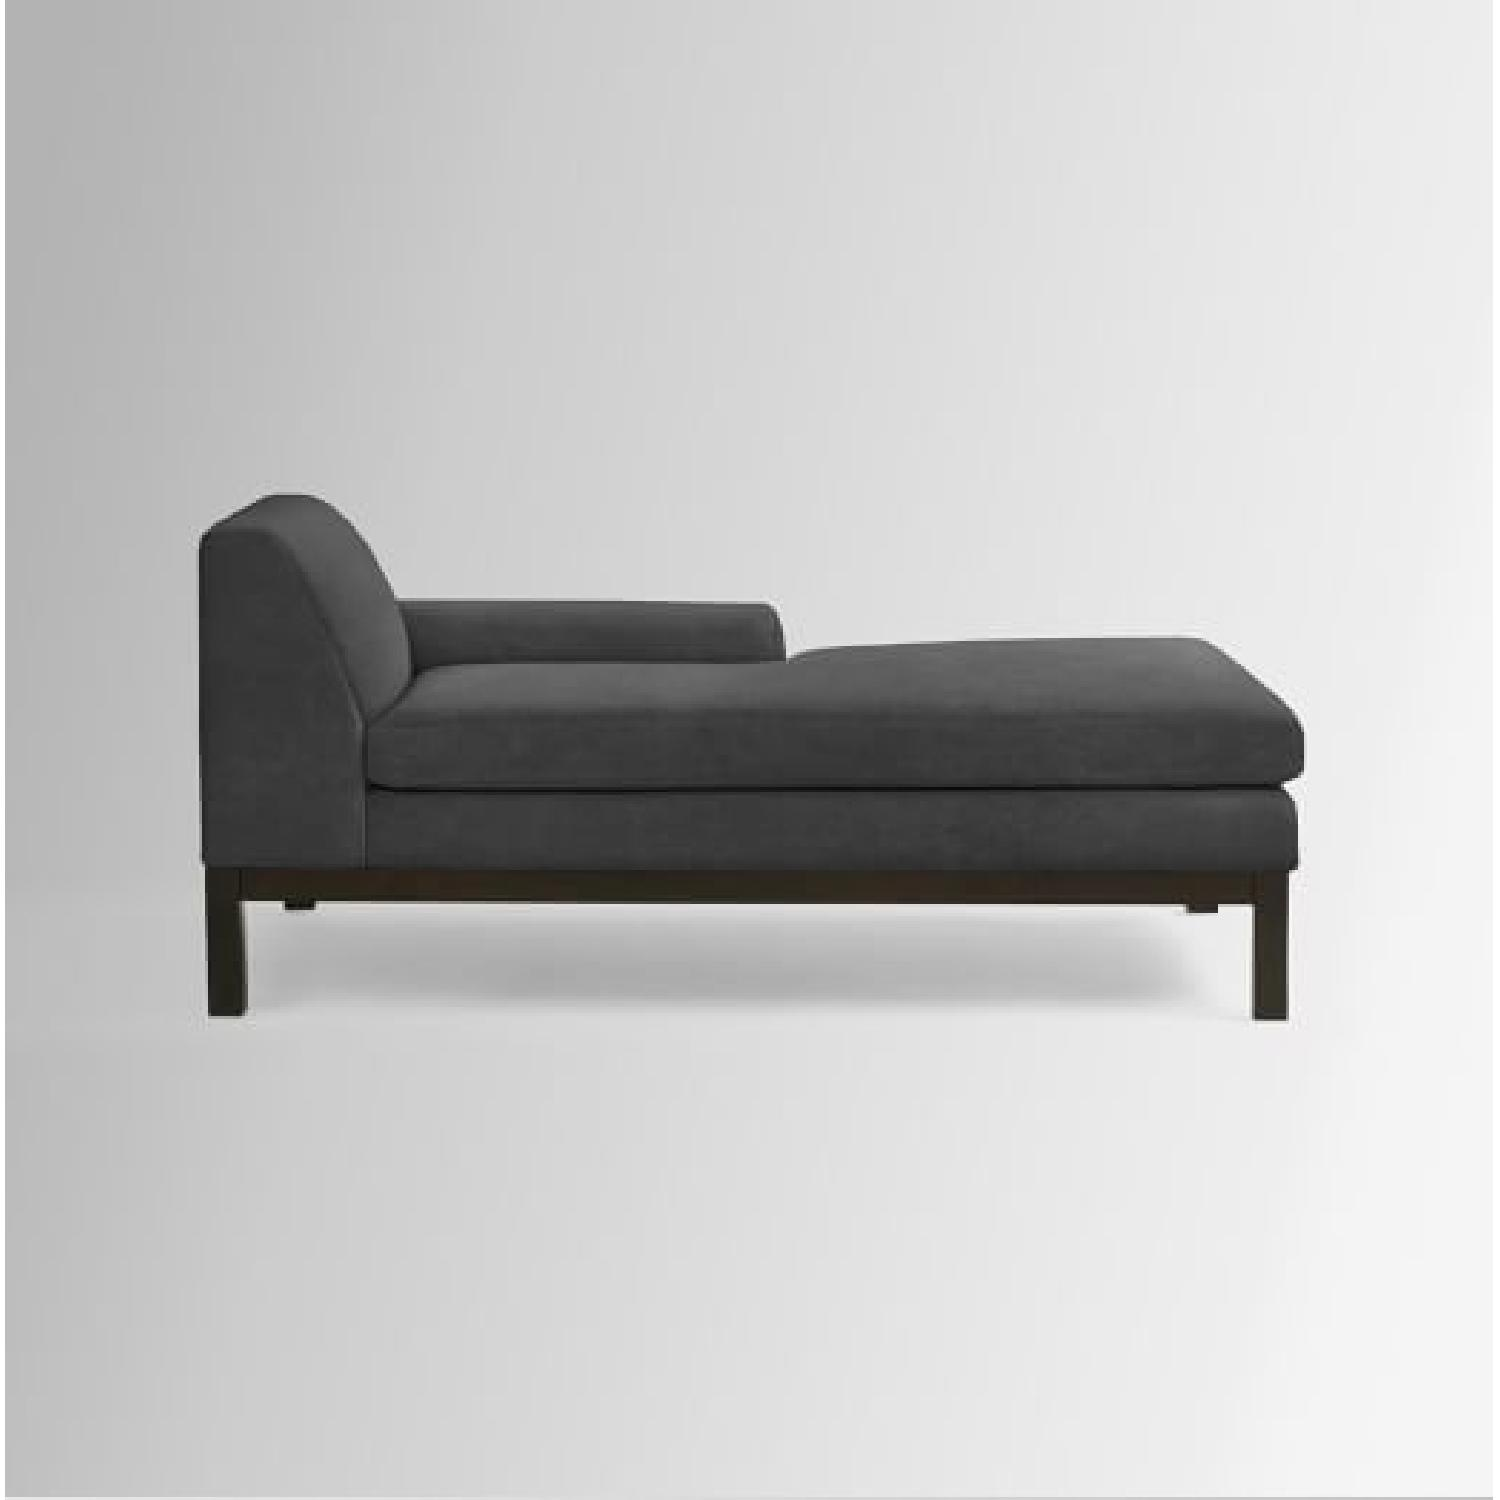 West Elm Lorimer Grey Chaise Lounge ... : chaise lounge grey - Sectionals, Sofas & Couches